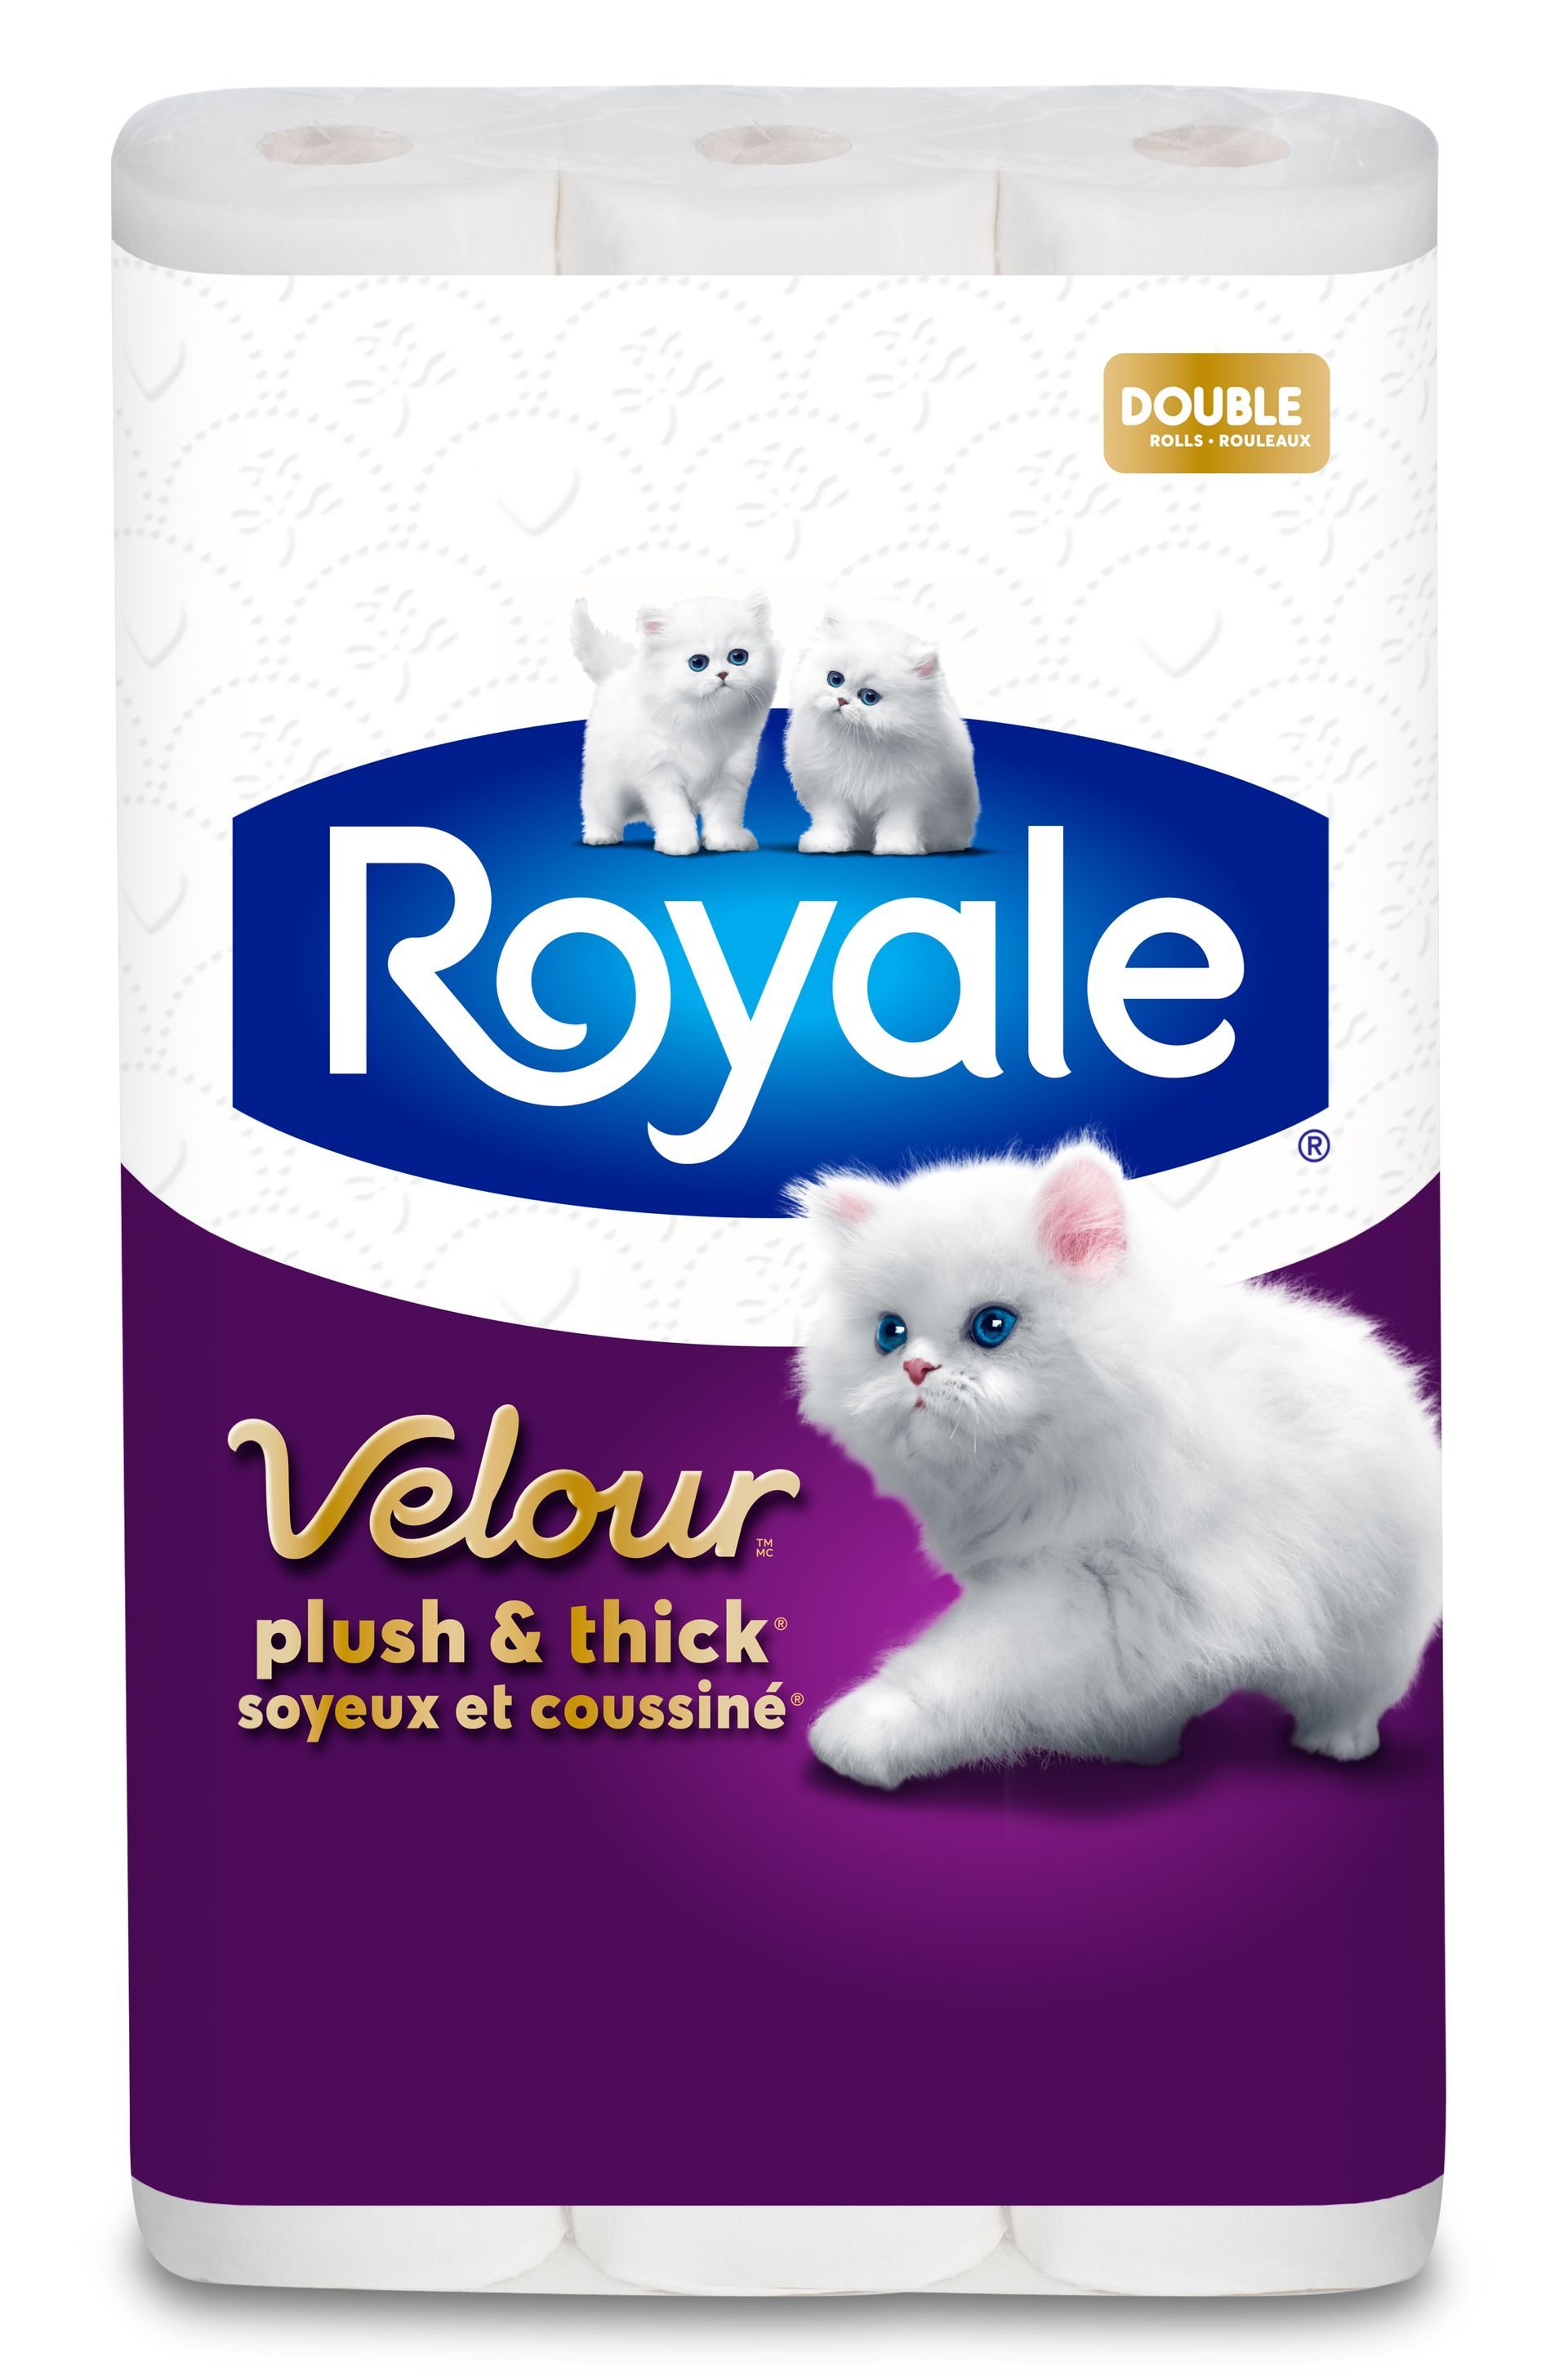 ROYALE® Velour™ 双倍量卷 pack